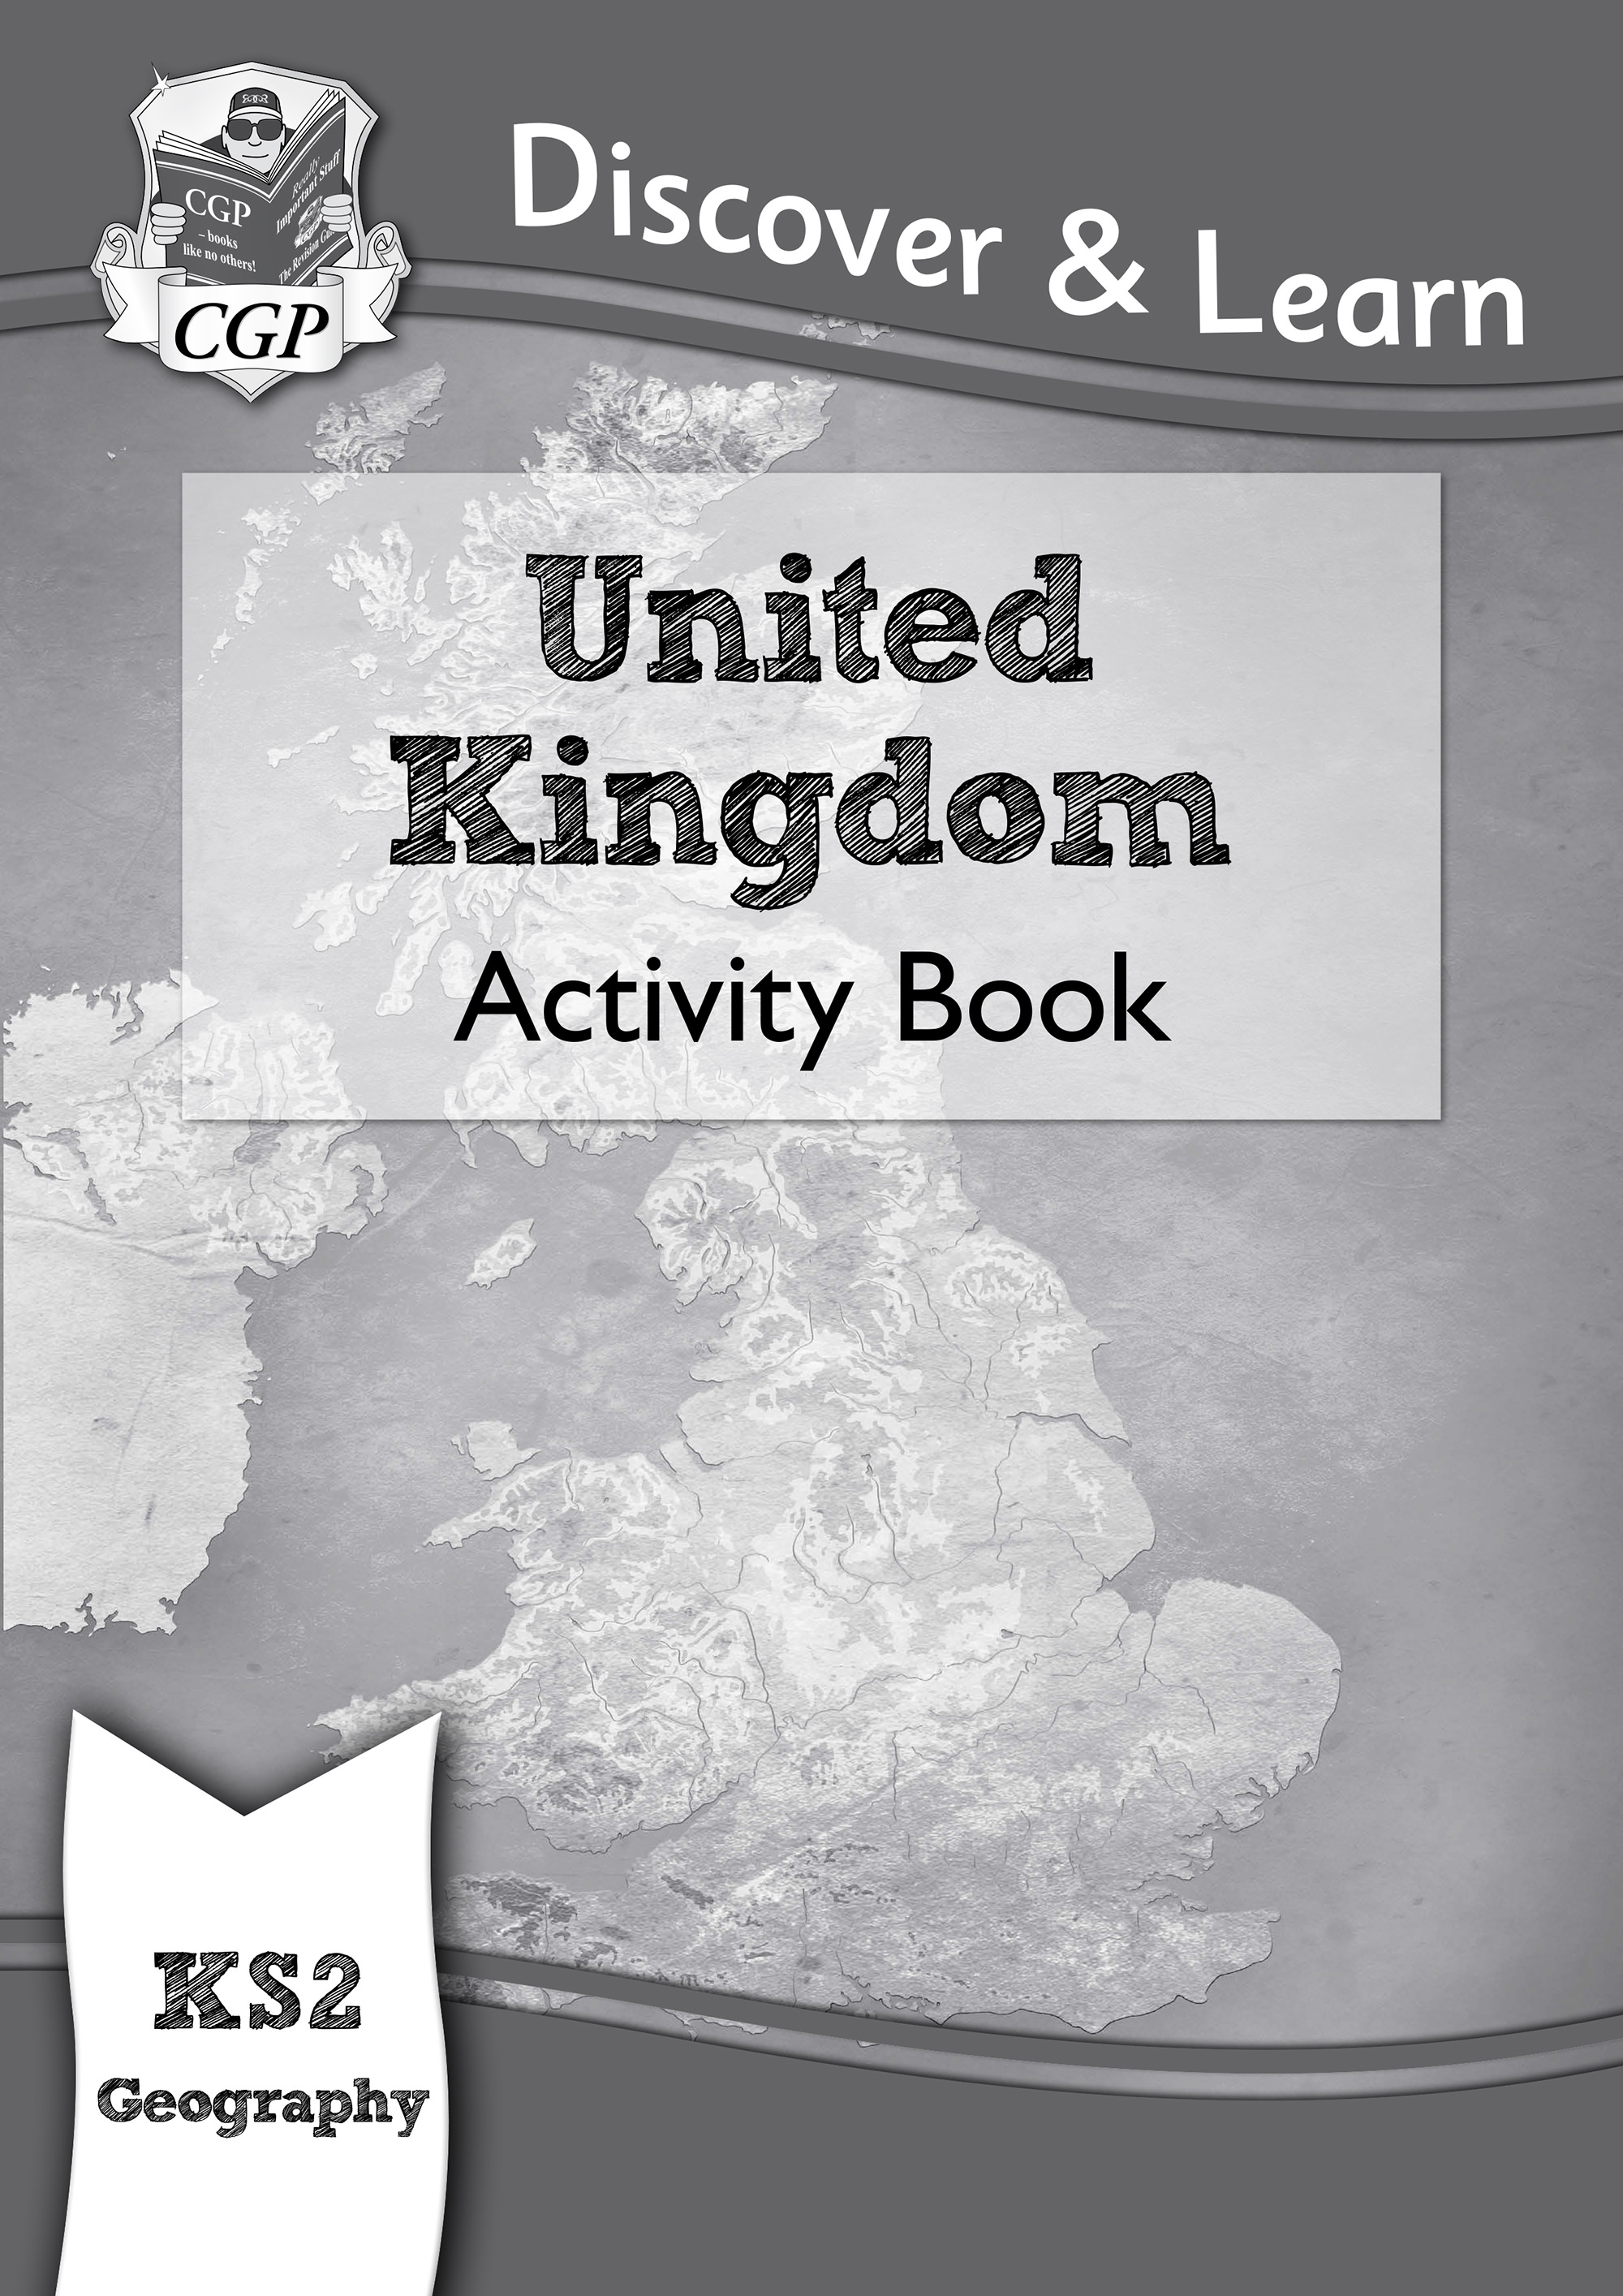 GUW21D - KS2 Discover & Learn: Geography - United Kingdom Activity Book Online Edition